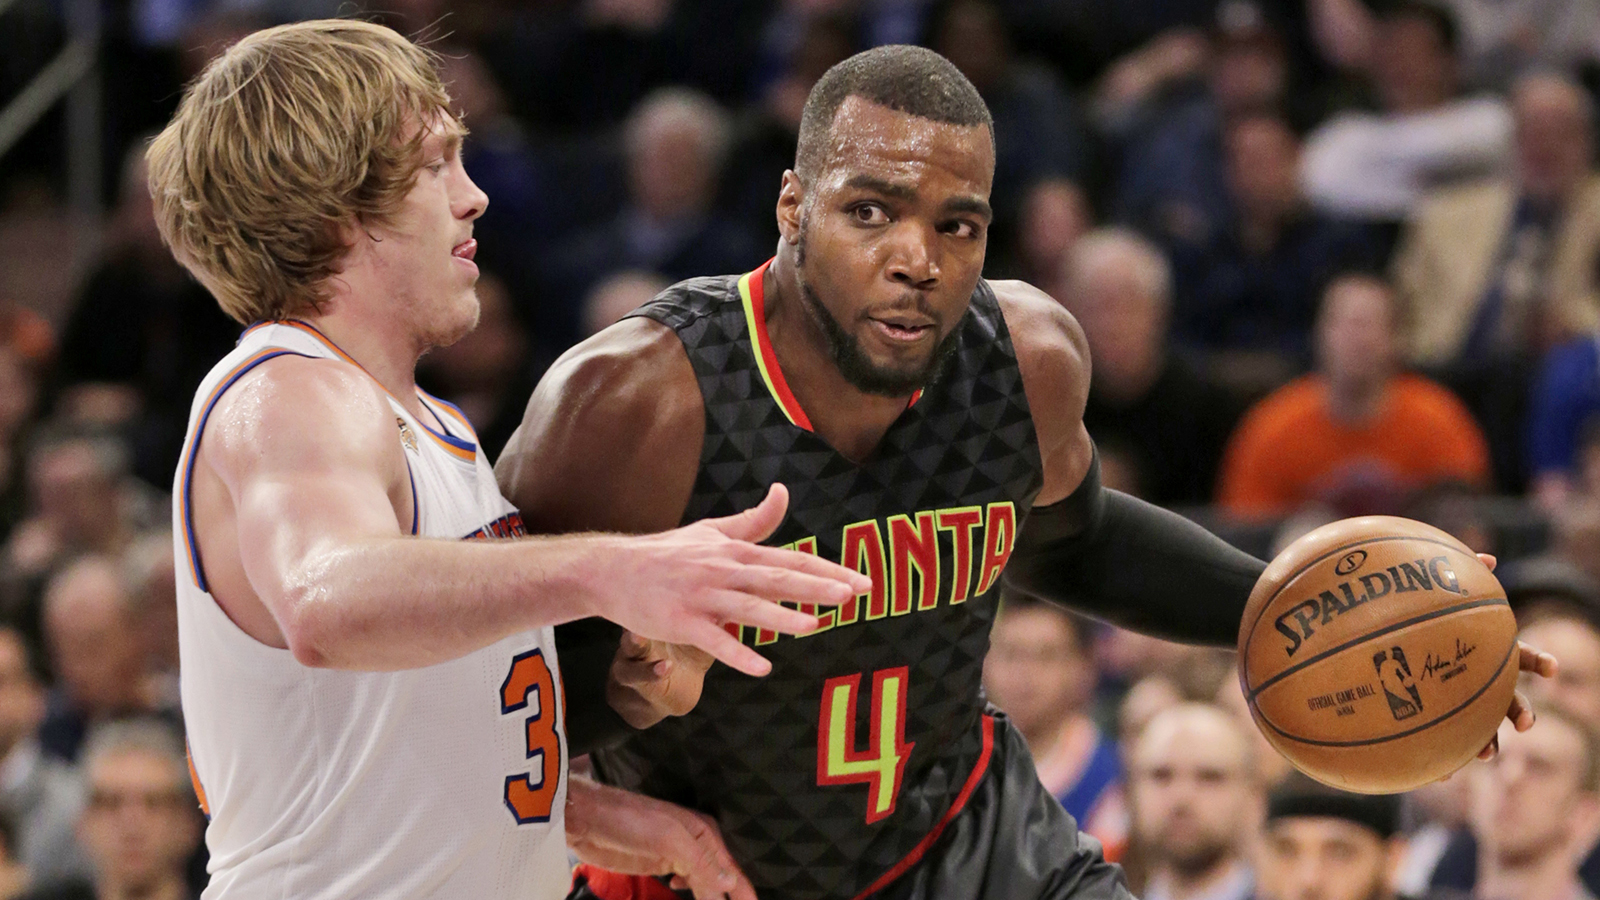 Hawks forward Paul Millsap named to 4th straight All-Star roster